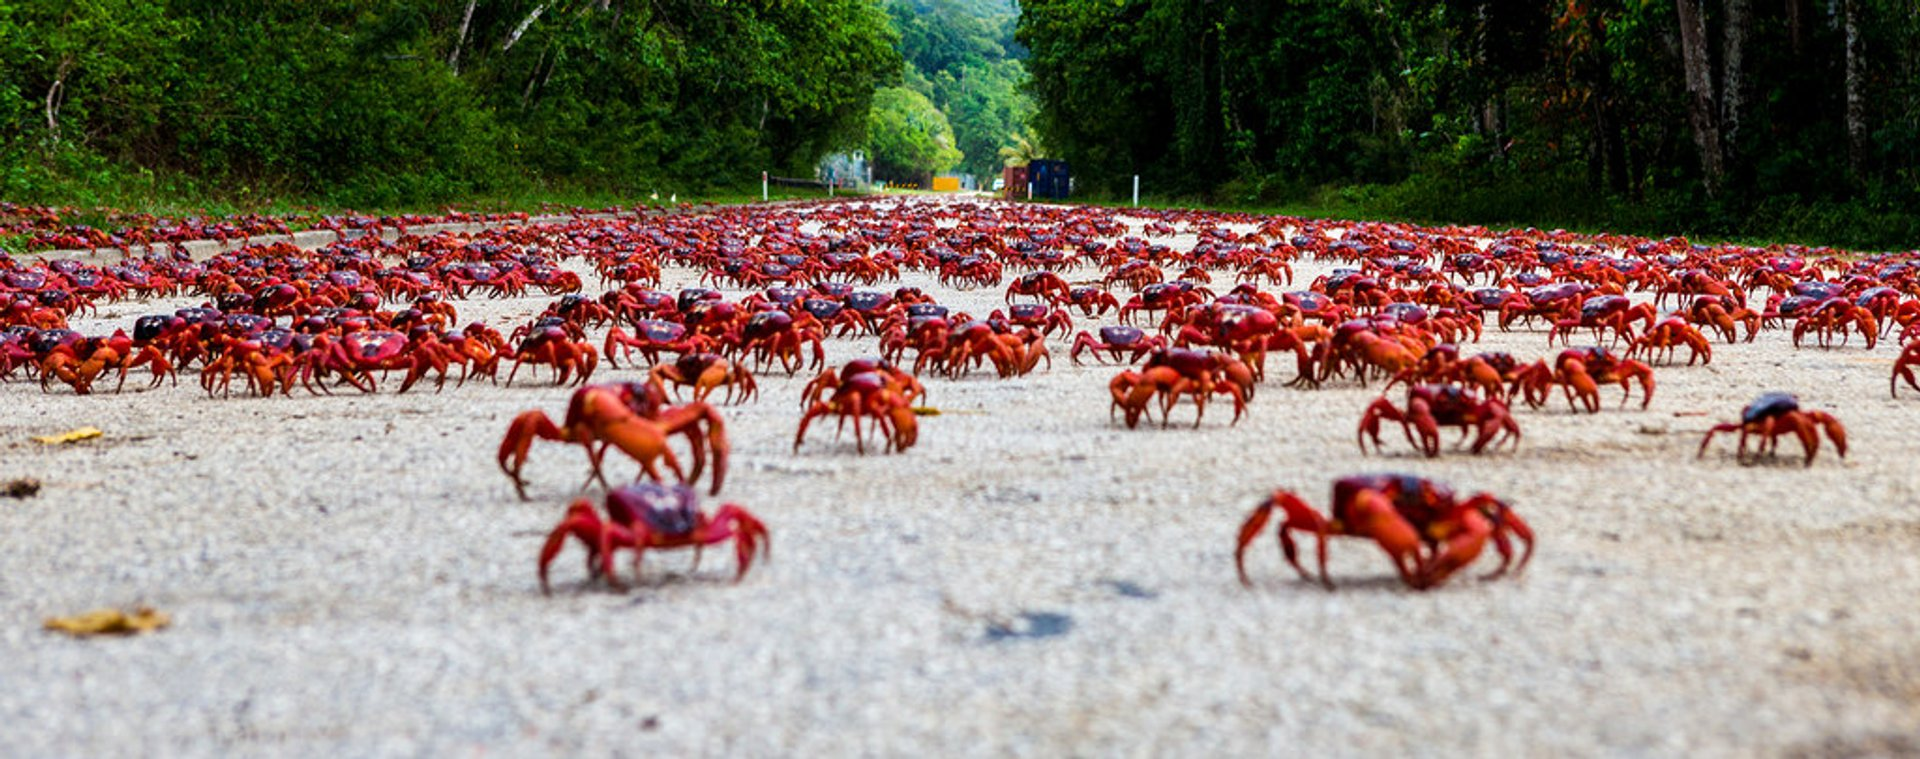 Red Crab Migration in Christmas Island 2020 - Best Time